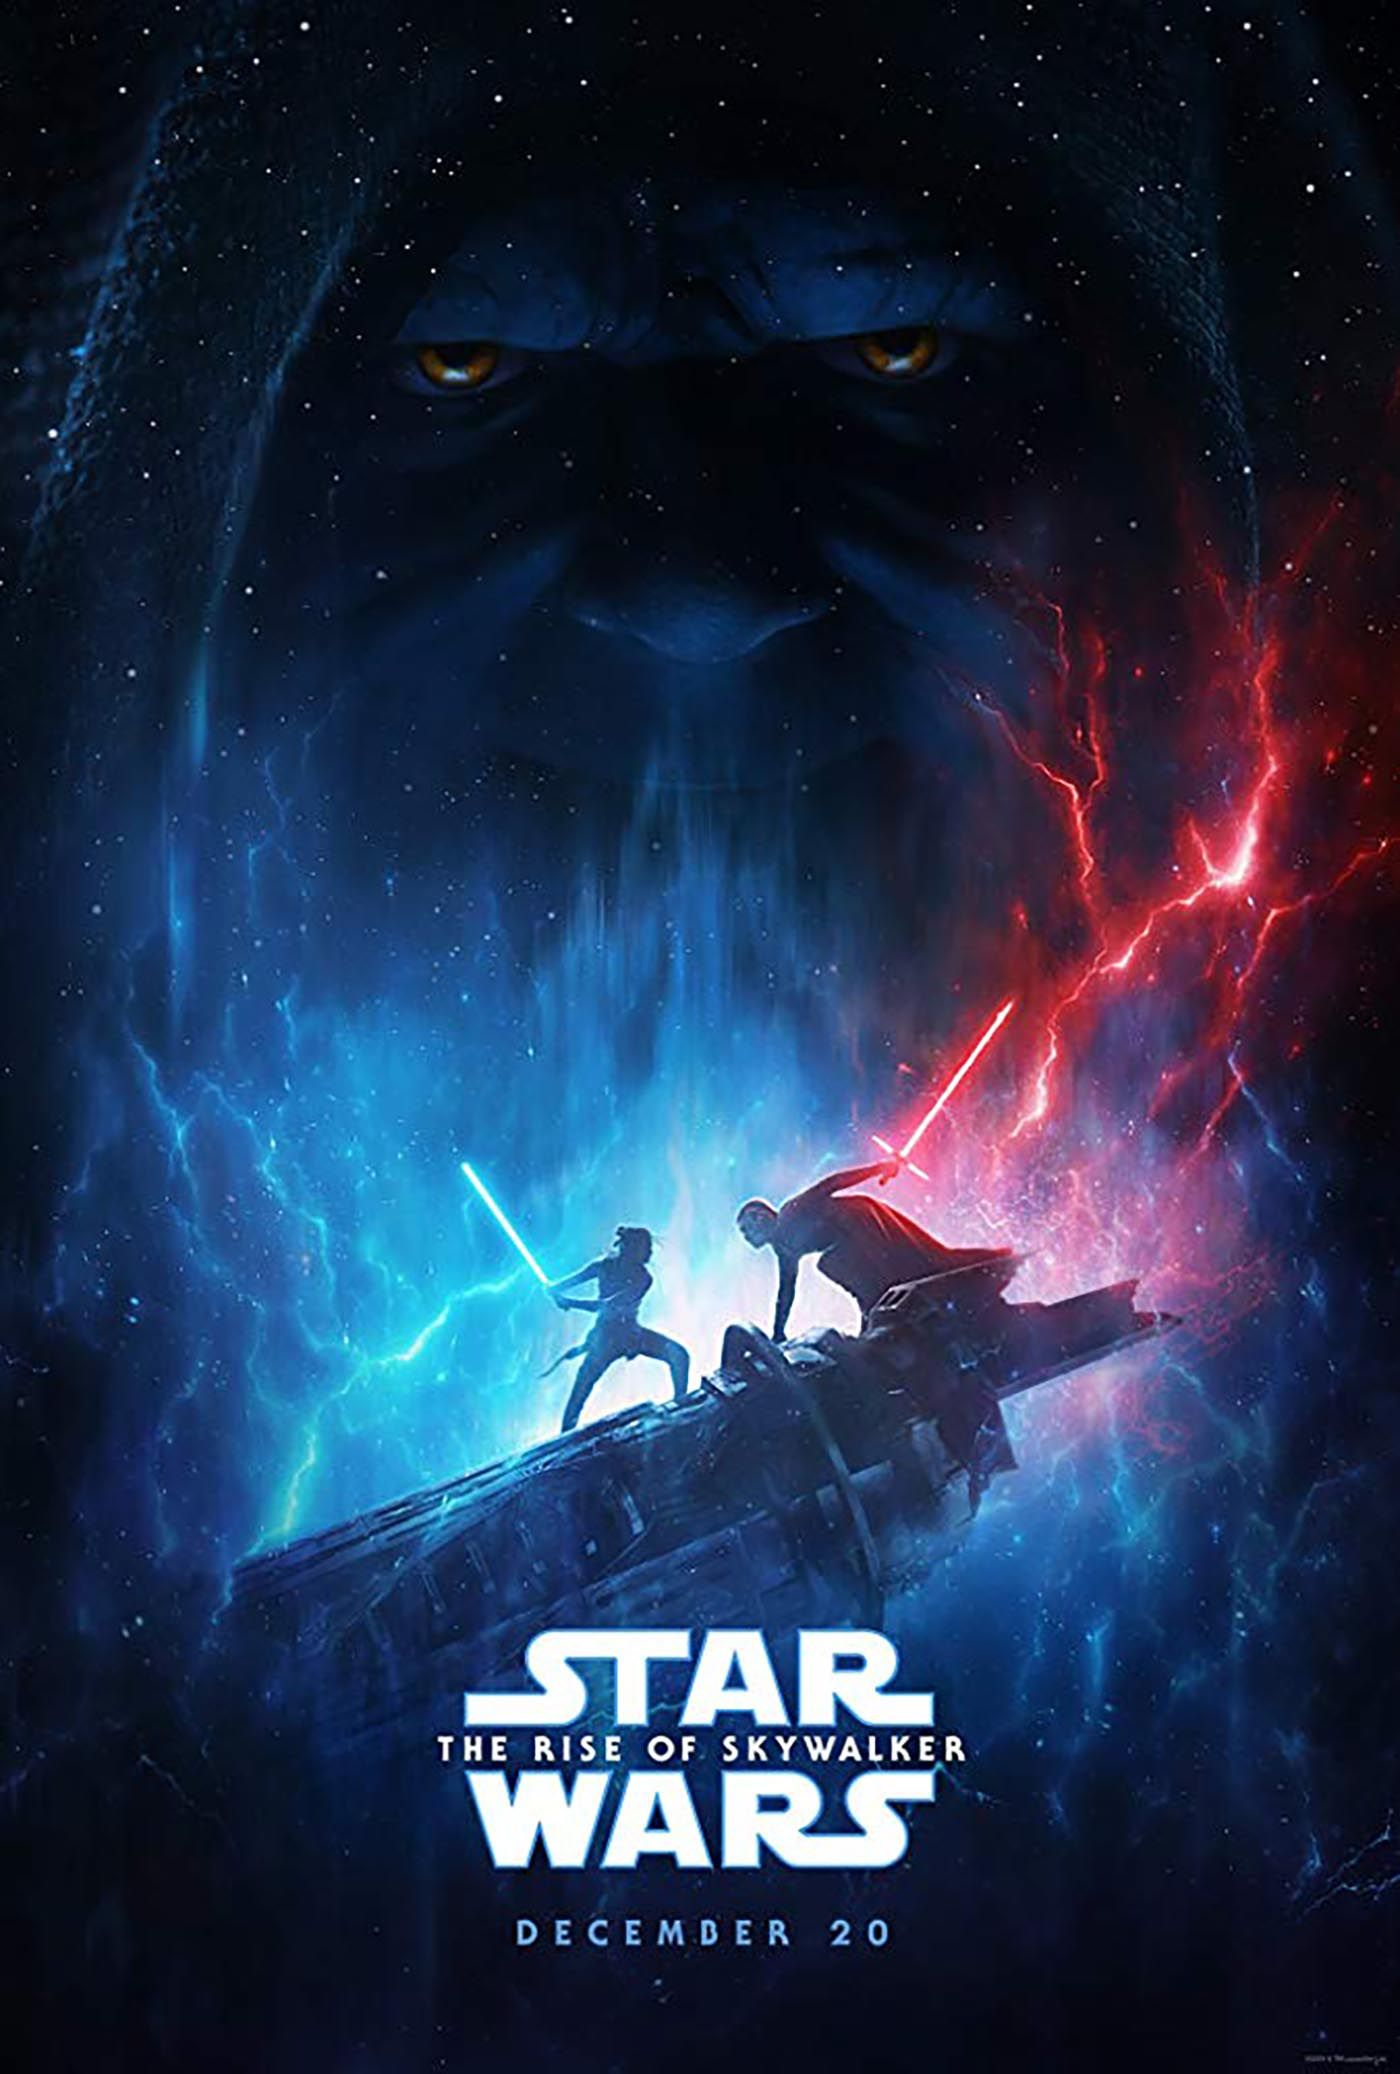 Watch The Star Wars Films In Order To Prepare For Star Wars The Rise Of Skywalker Star Wars Watch Star Wars Poster Star Wars Episodes